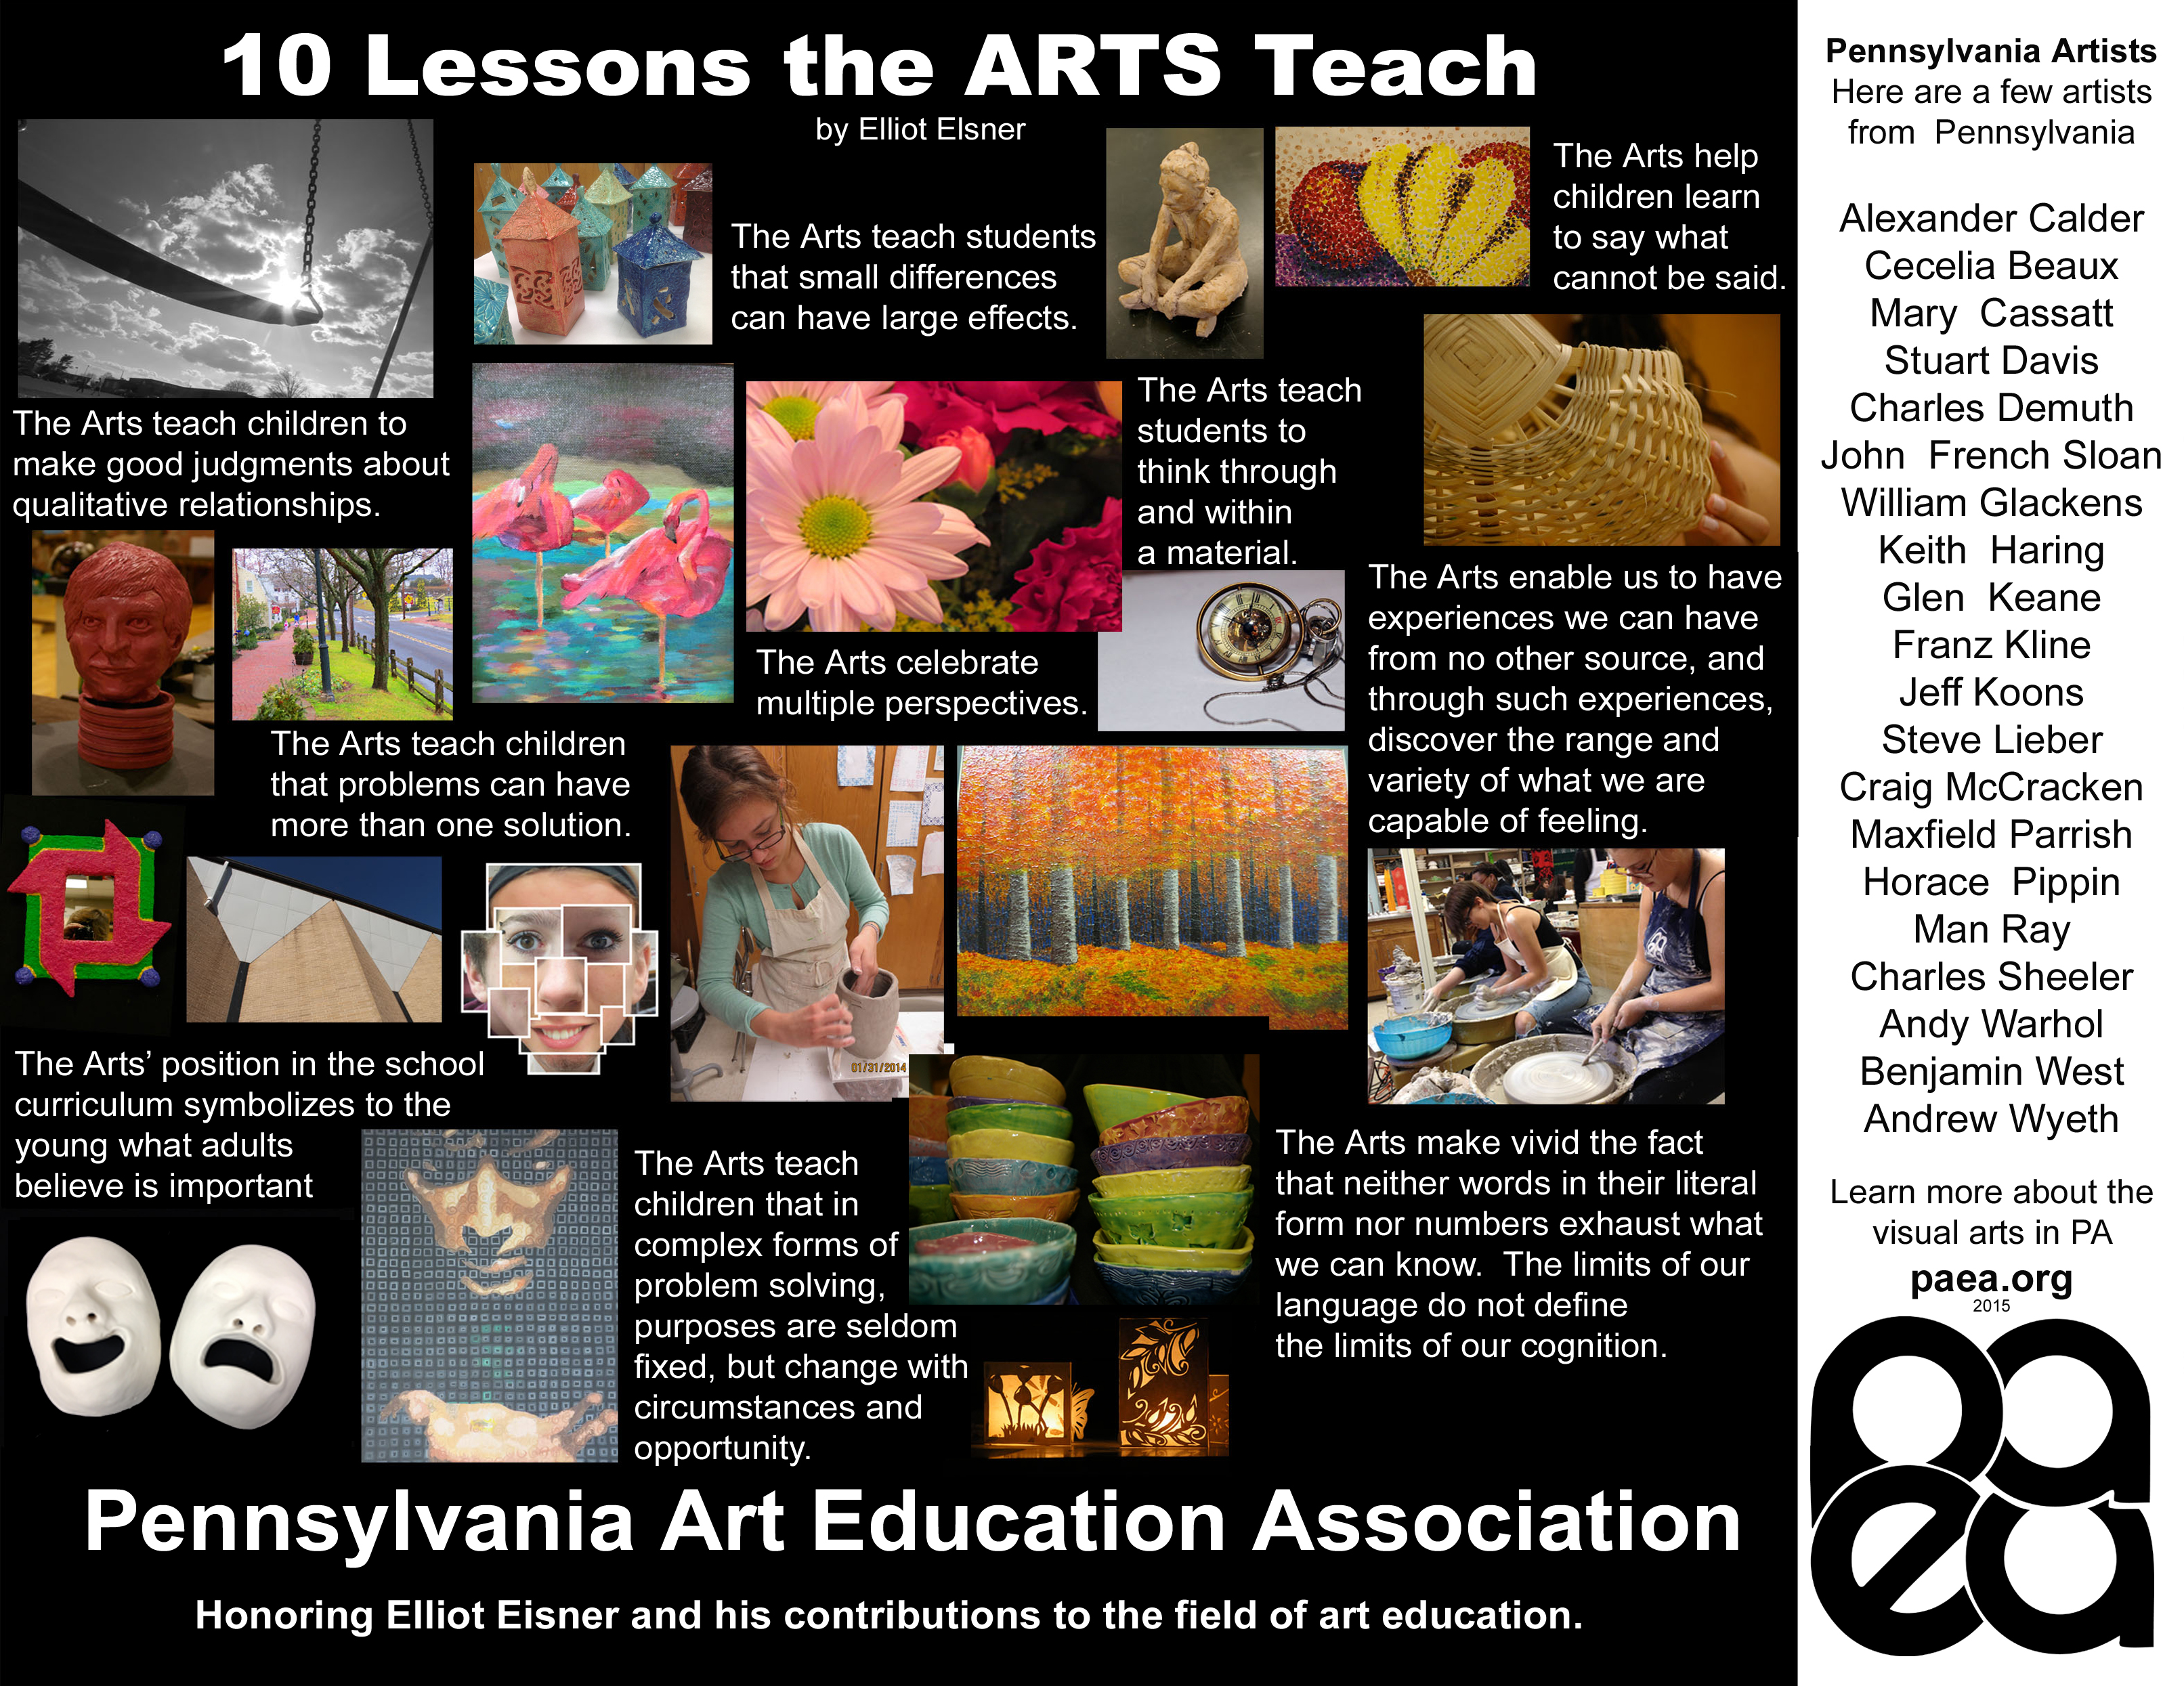 Ten lessons  poster for PAEA with PA Artists